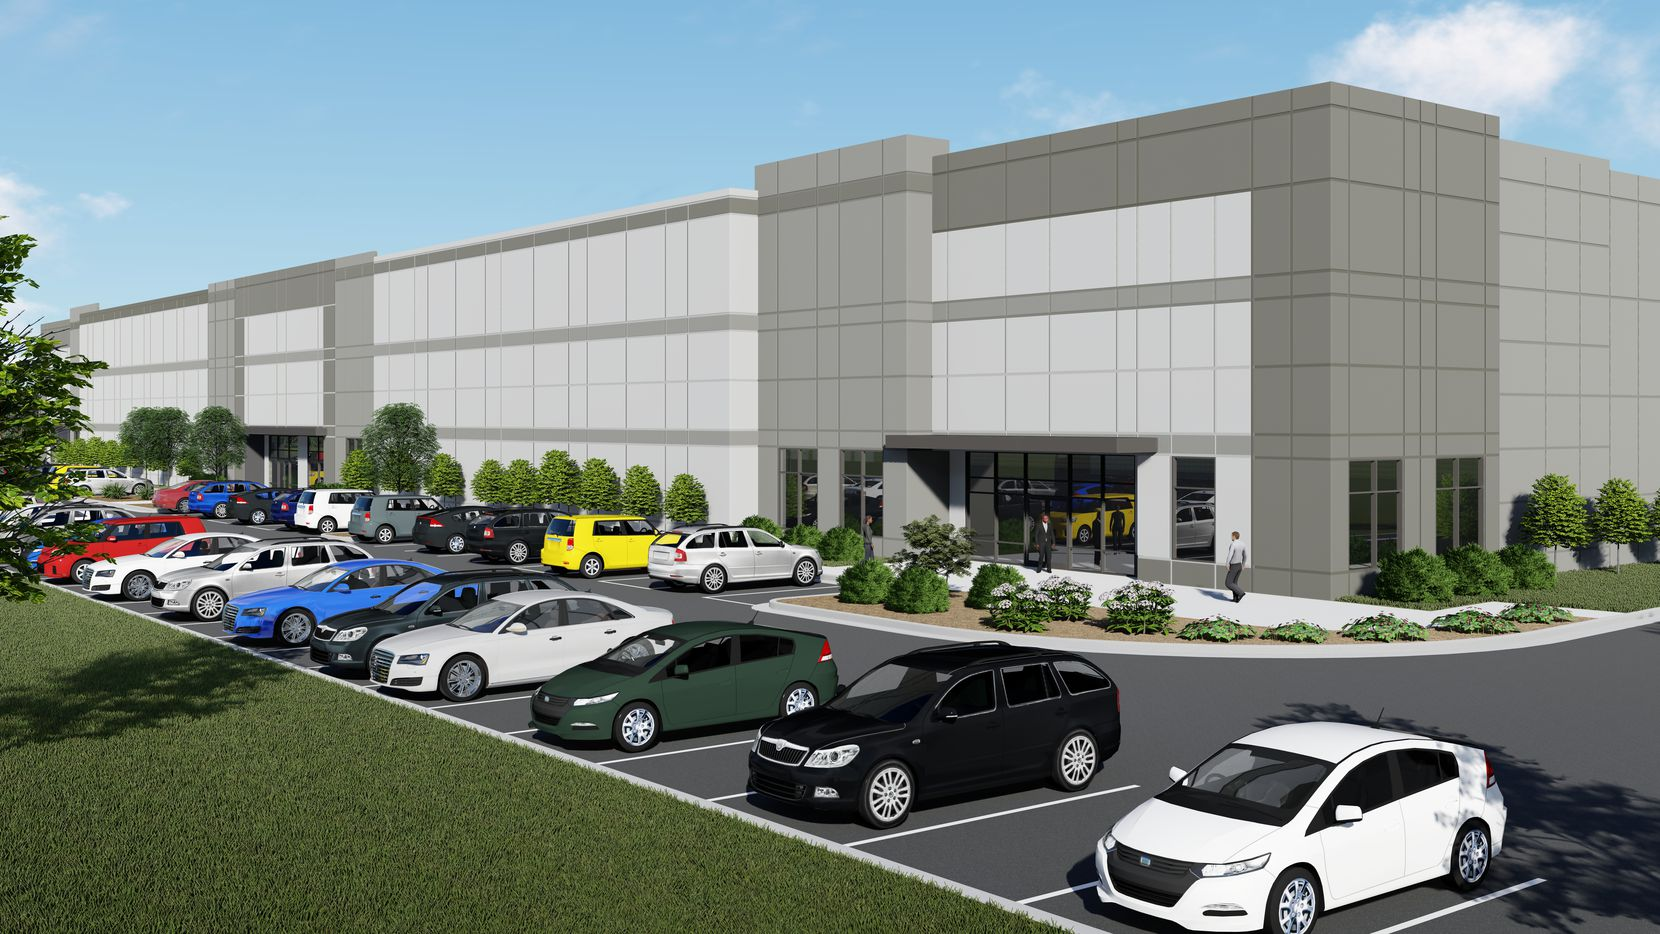 Dalfen America Corp. is building the project near U.S. Highway 75 in McKinney.